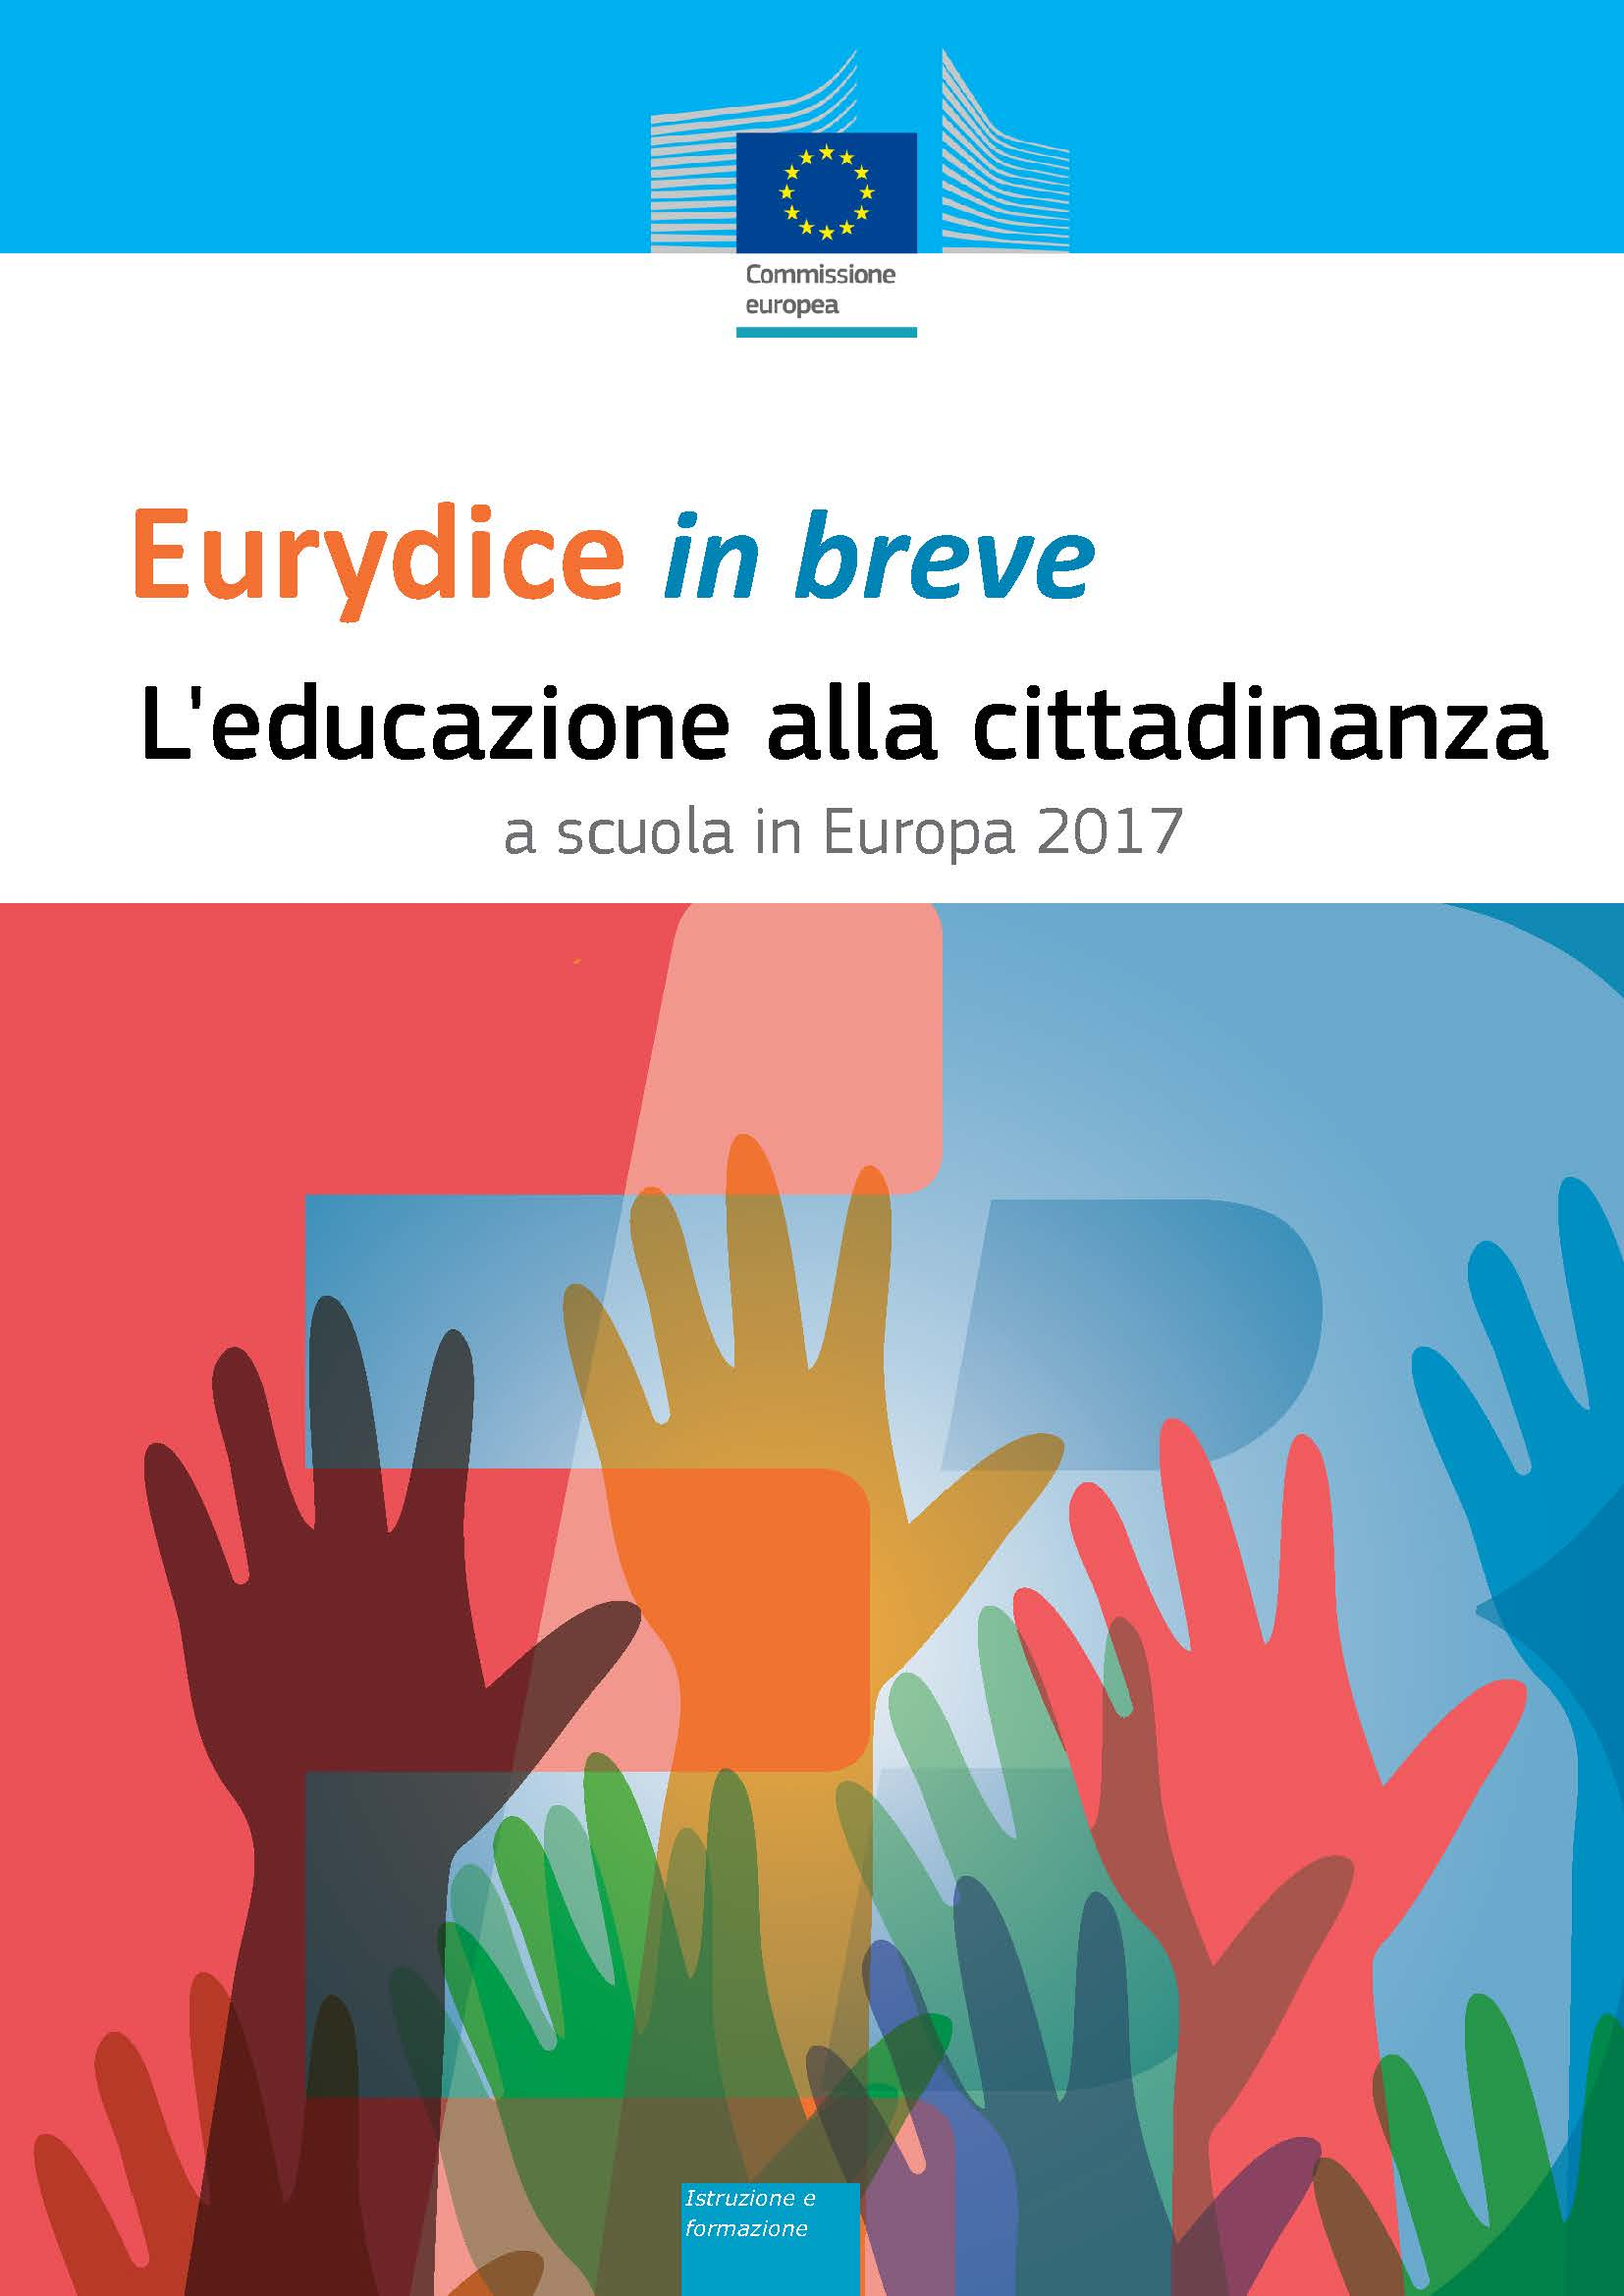 Eurydice_in_breve_cittadinanza_cover